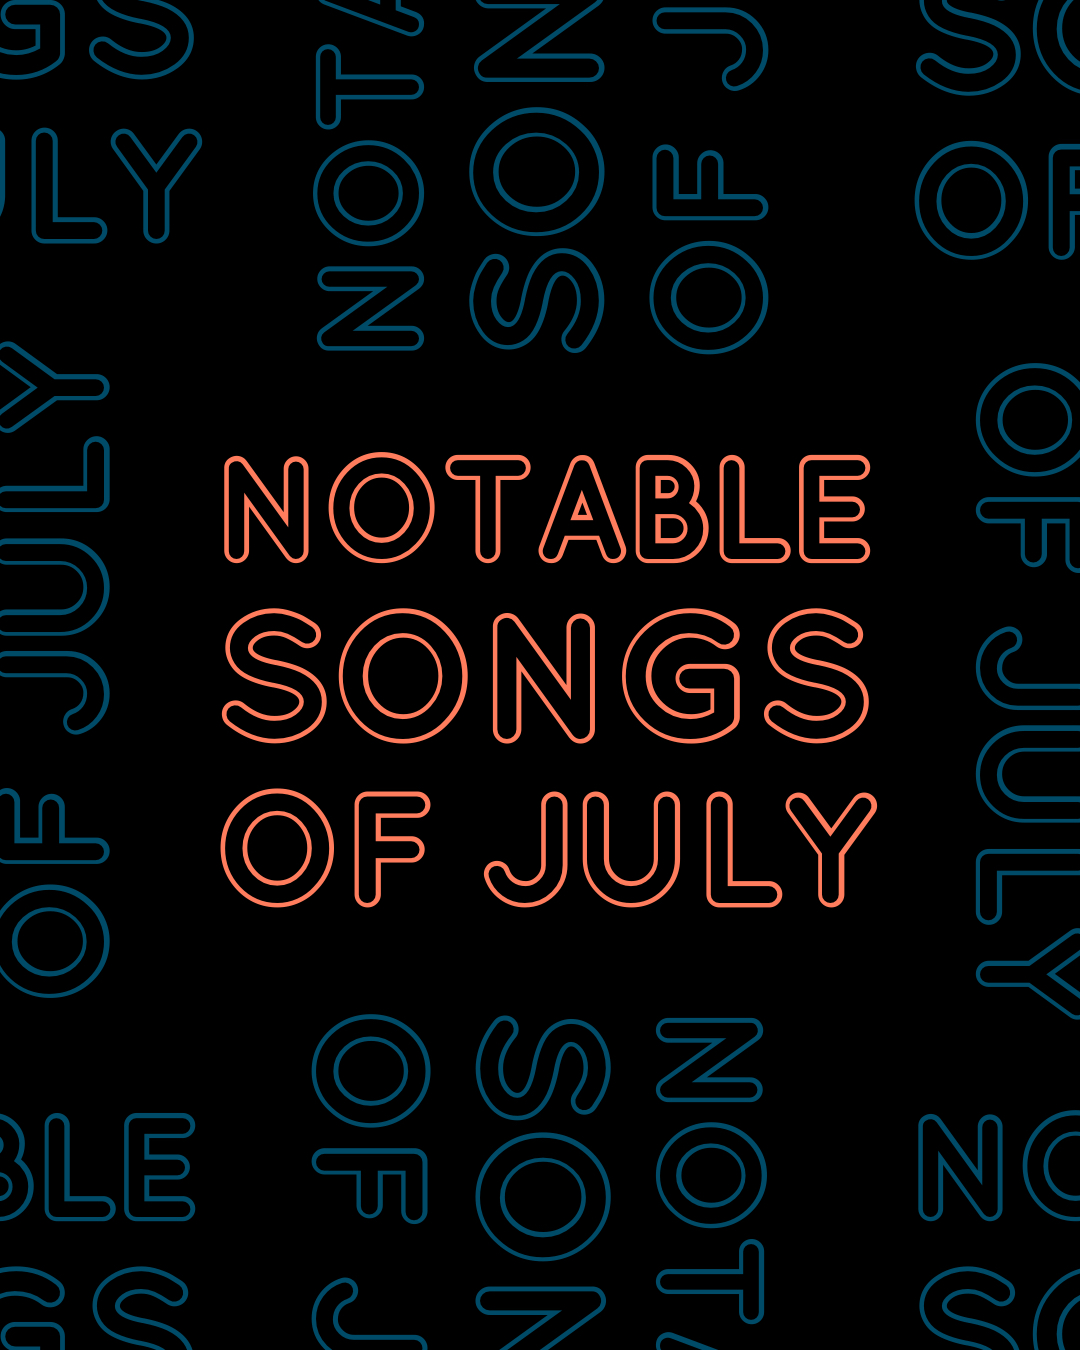 Next Week 692 Our Notable Songs of July 2019